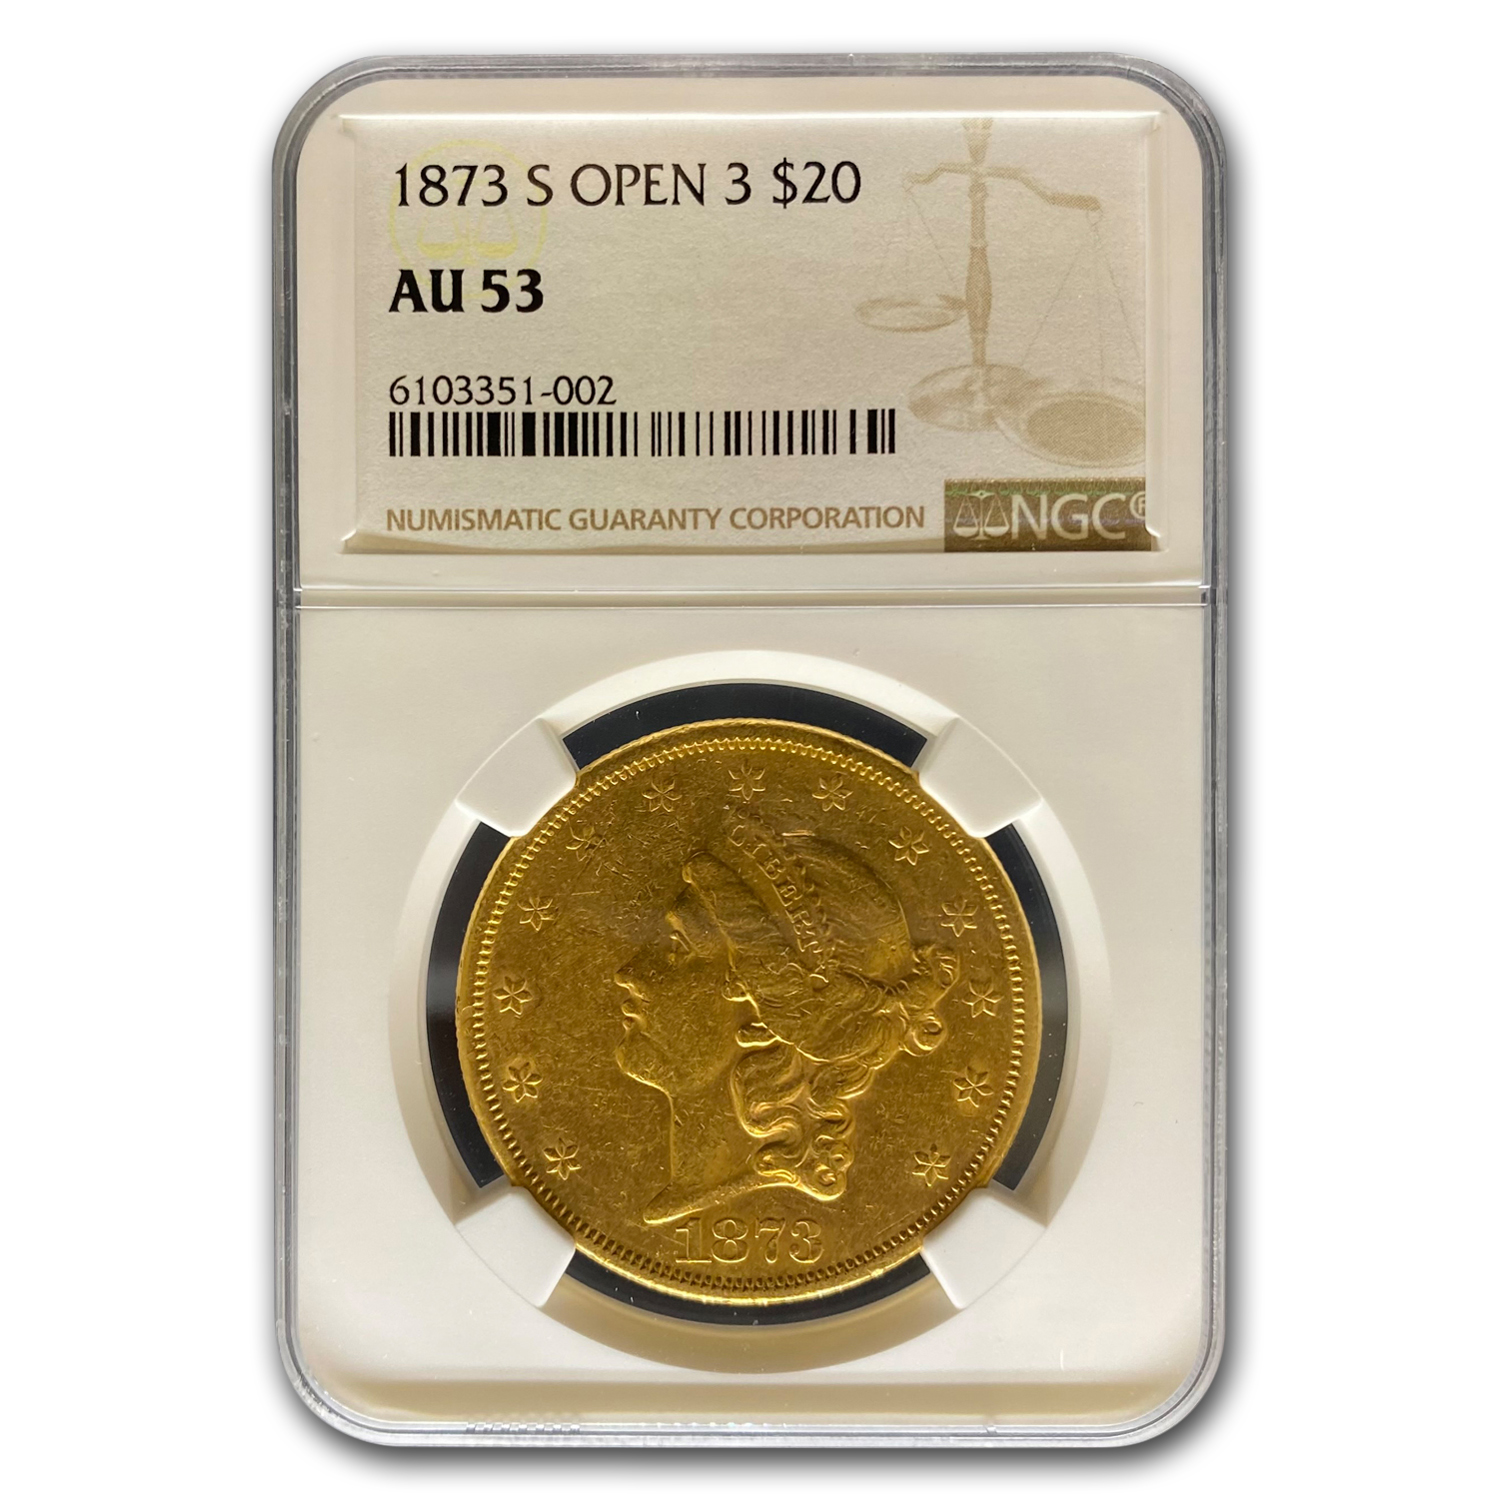 1873-S $20 Liberty Gold Double Eagle Open 3 AU-53 NGC